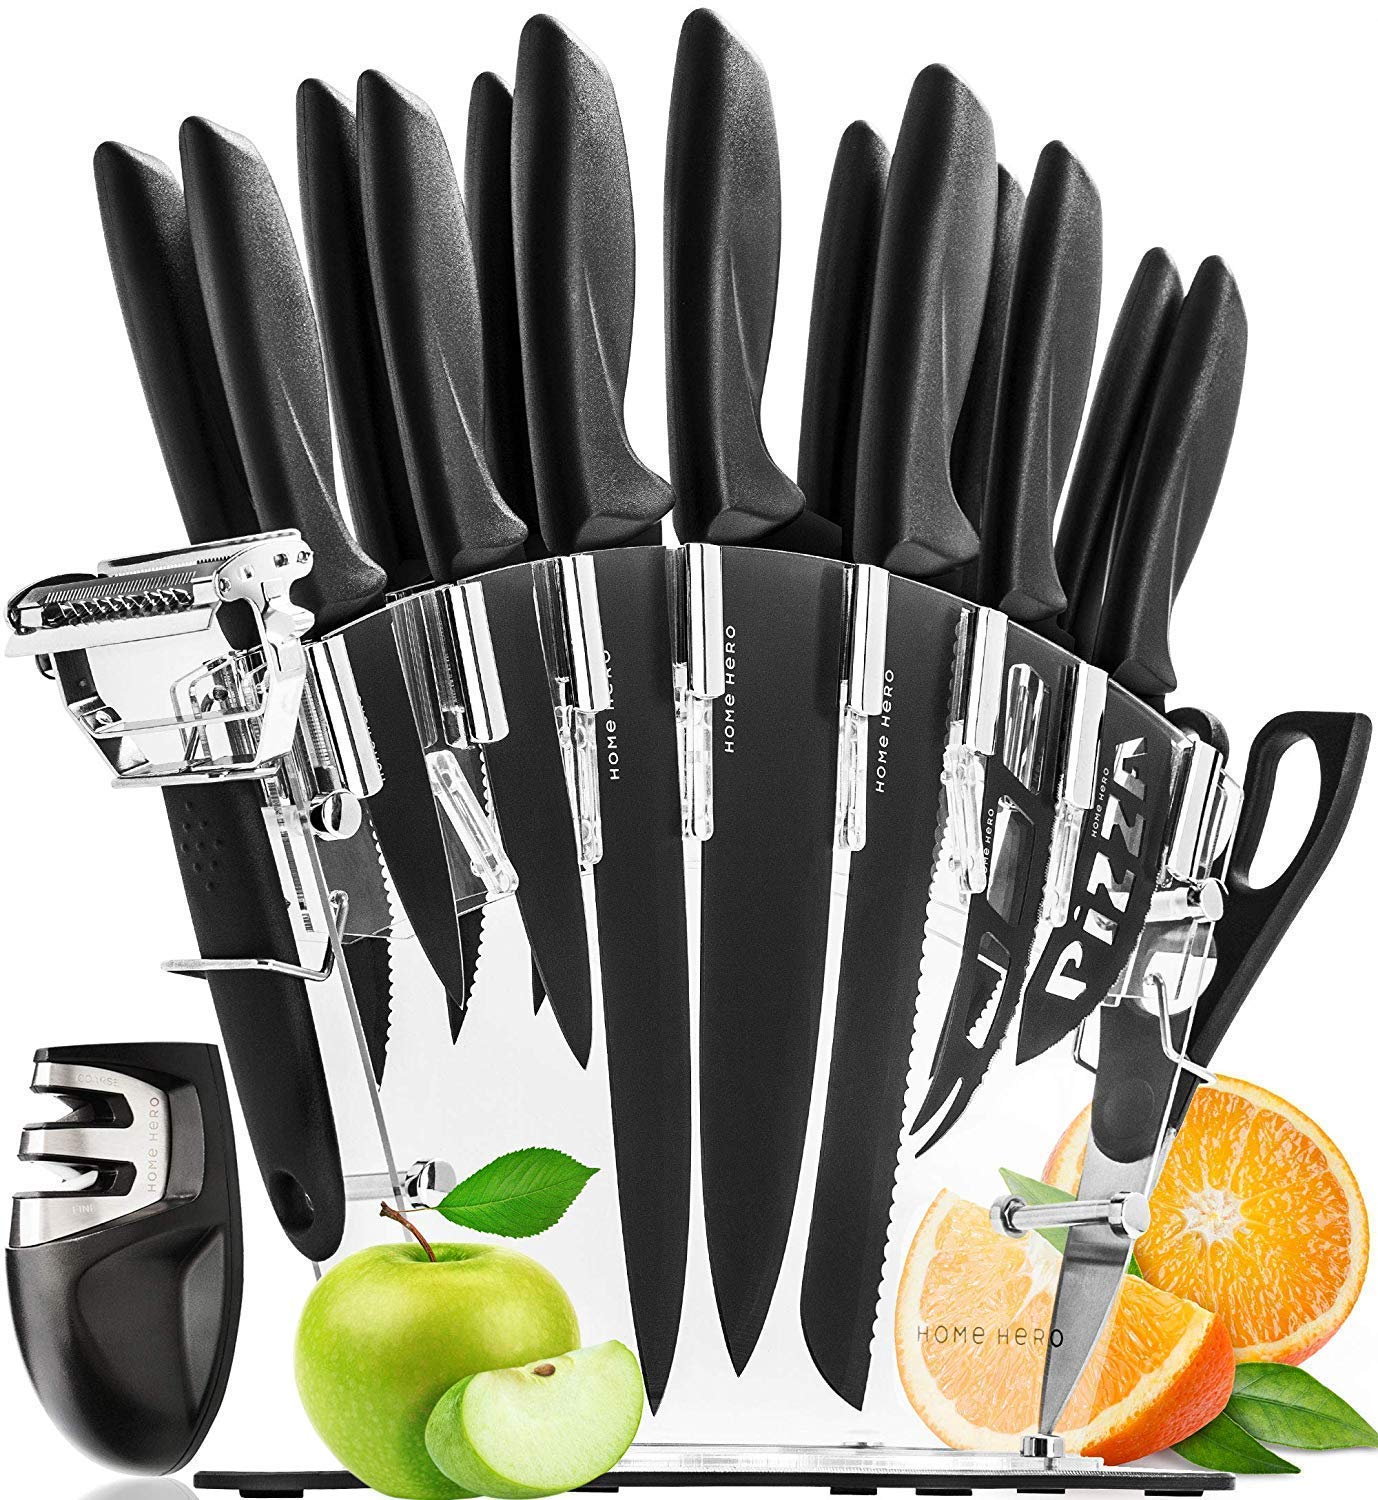 Kitchen Knife Set with Block - 13 Stainless Steel Kitchen Knives